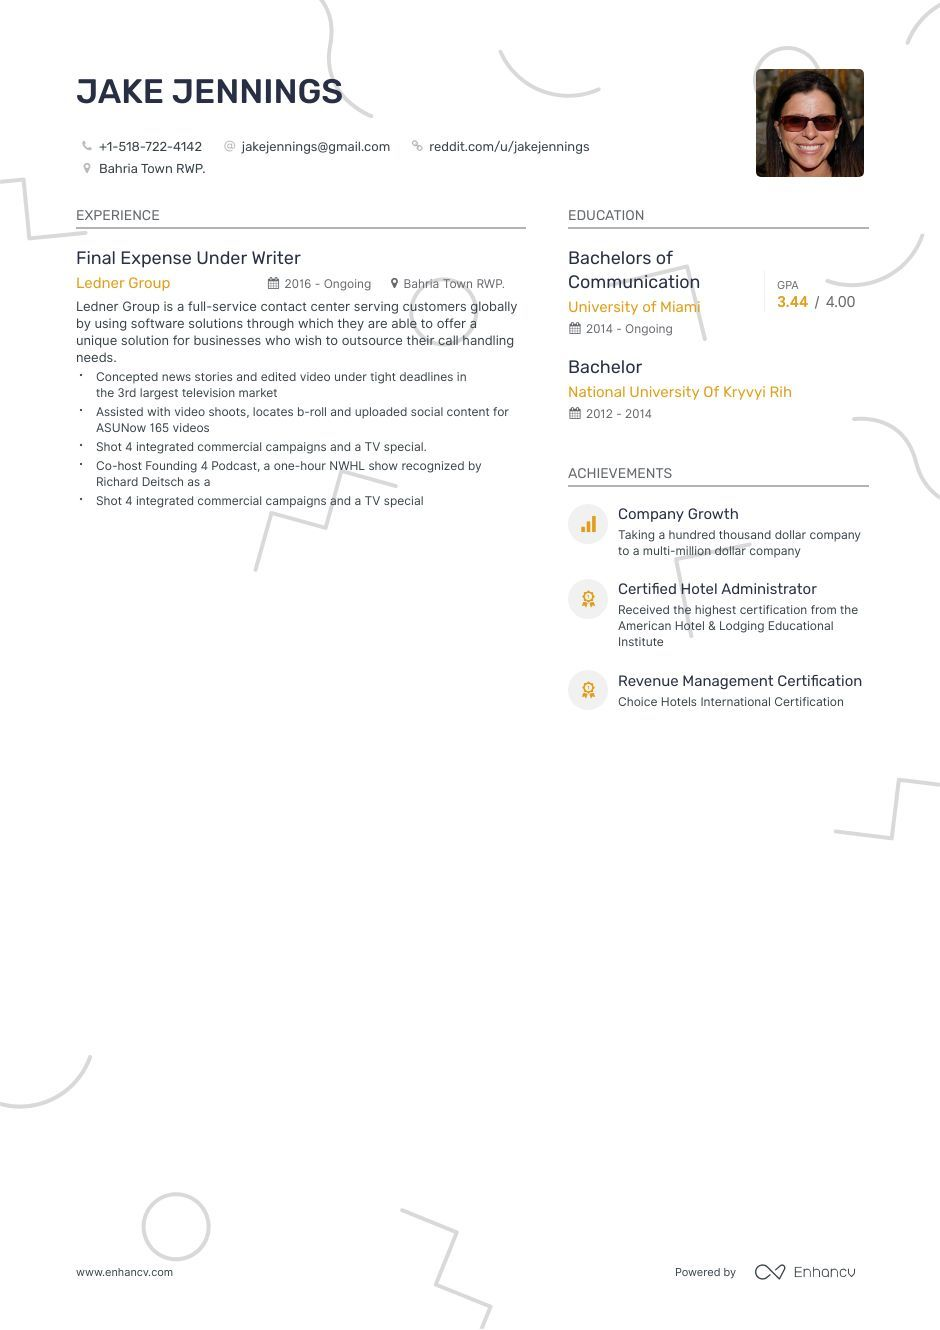 Freelancer Resume Examples and Skills You Need to Get